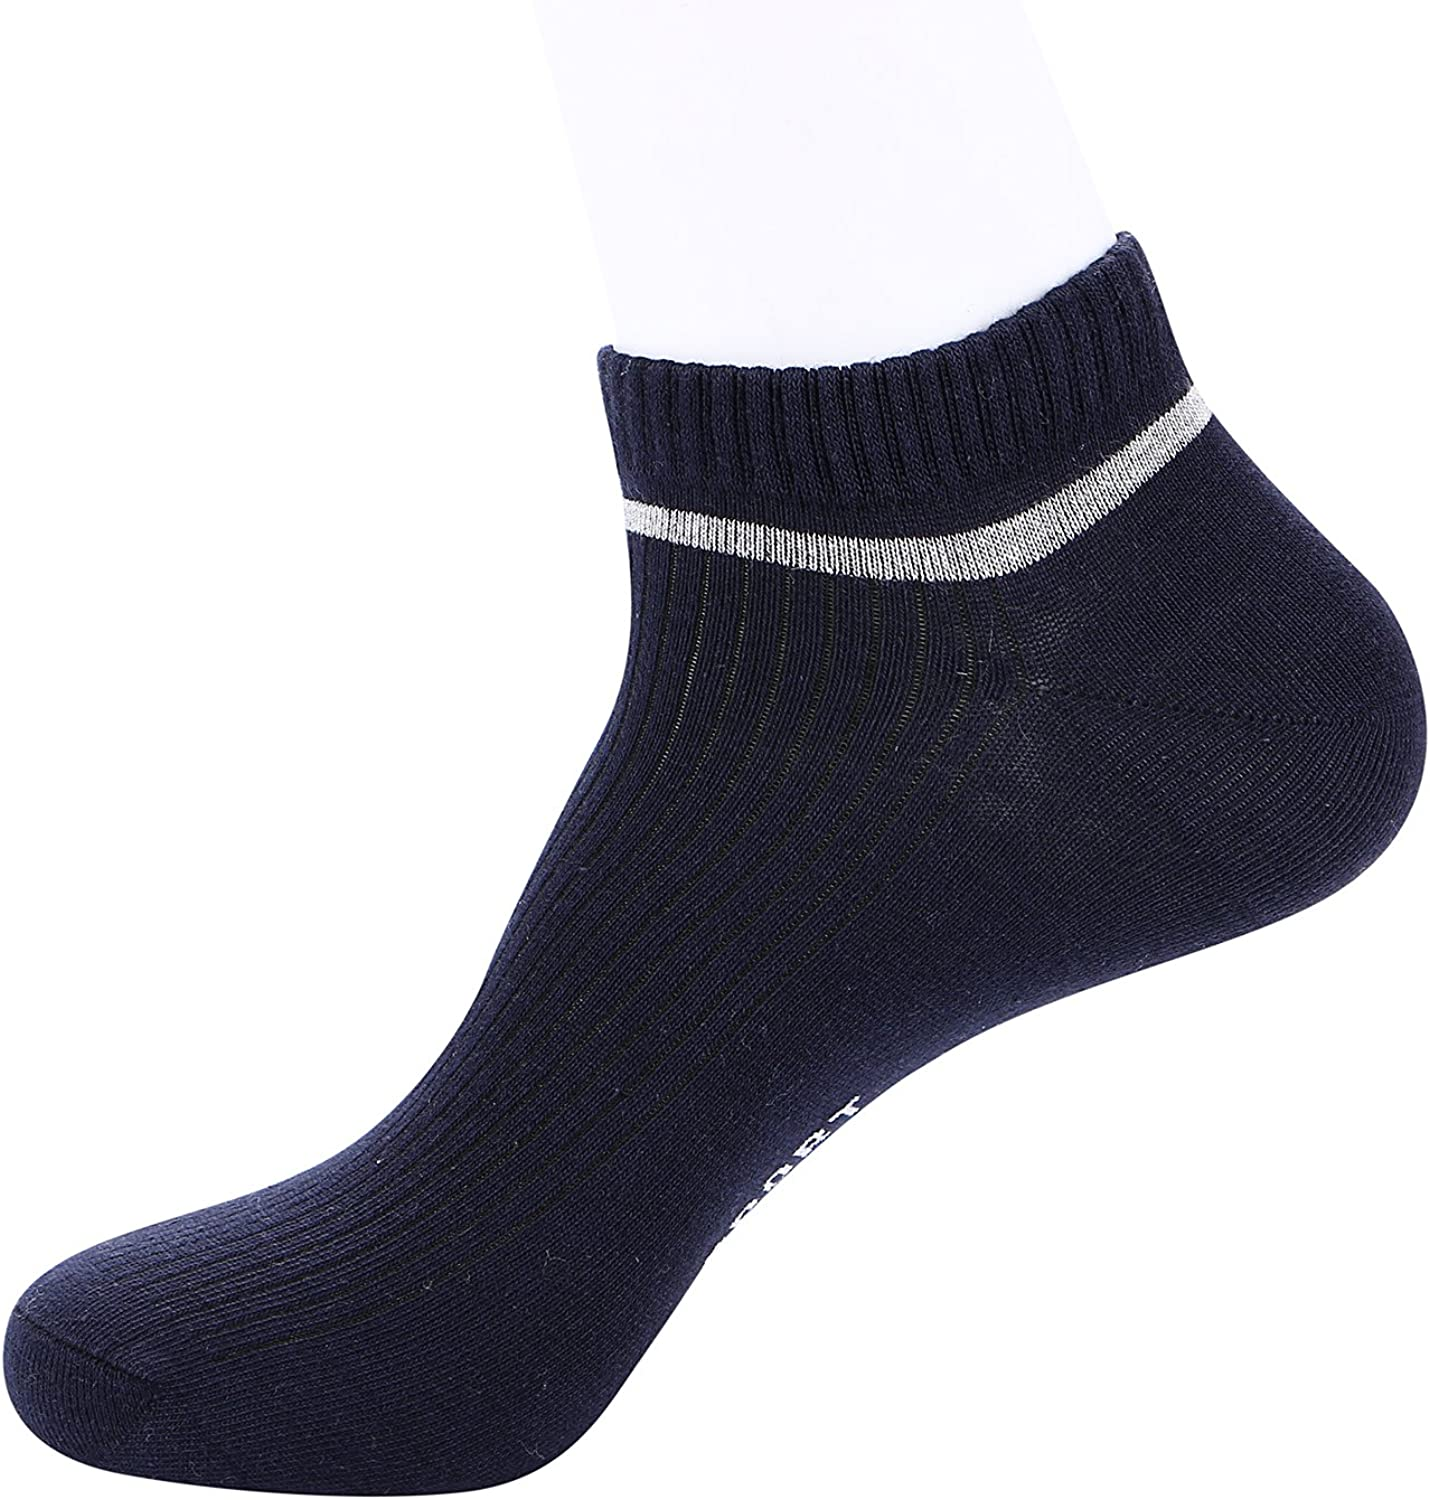 Elitimmy Mens Cotton Socks for Running,Workout and Casual